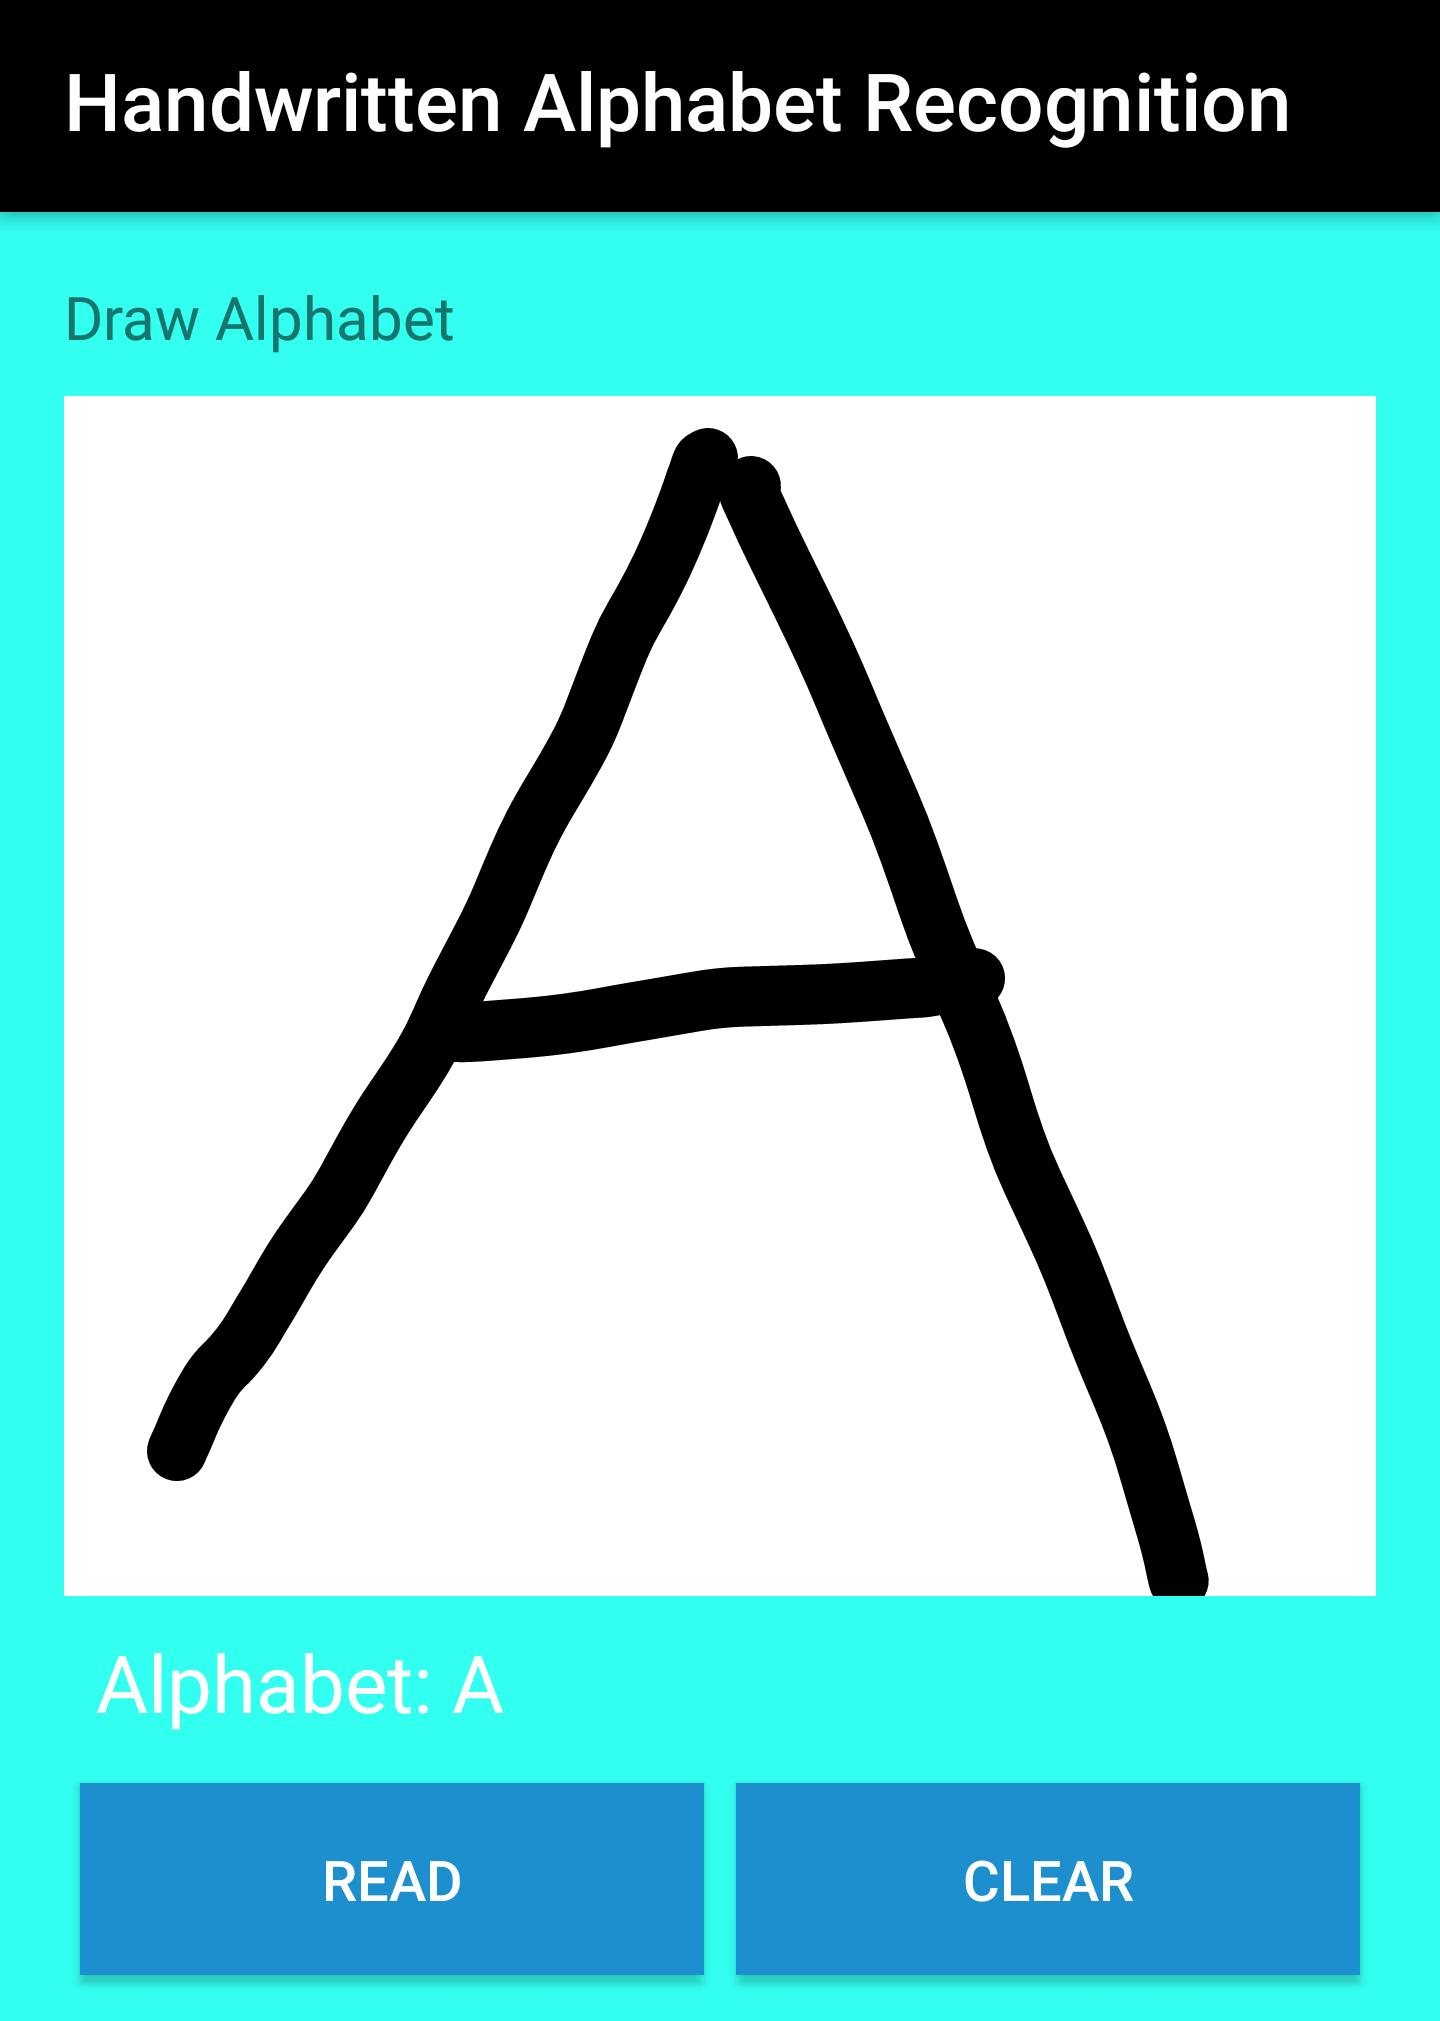 Handwritten Alphabet Recognition - Learn Abc For Android